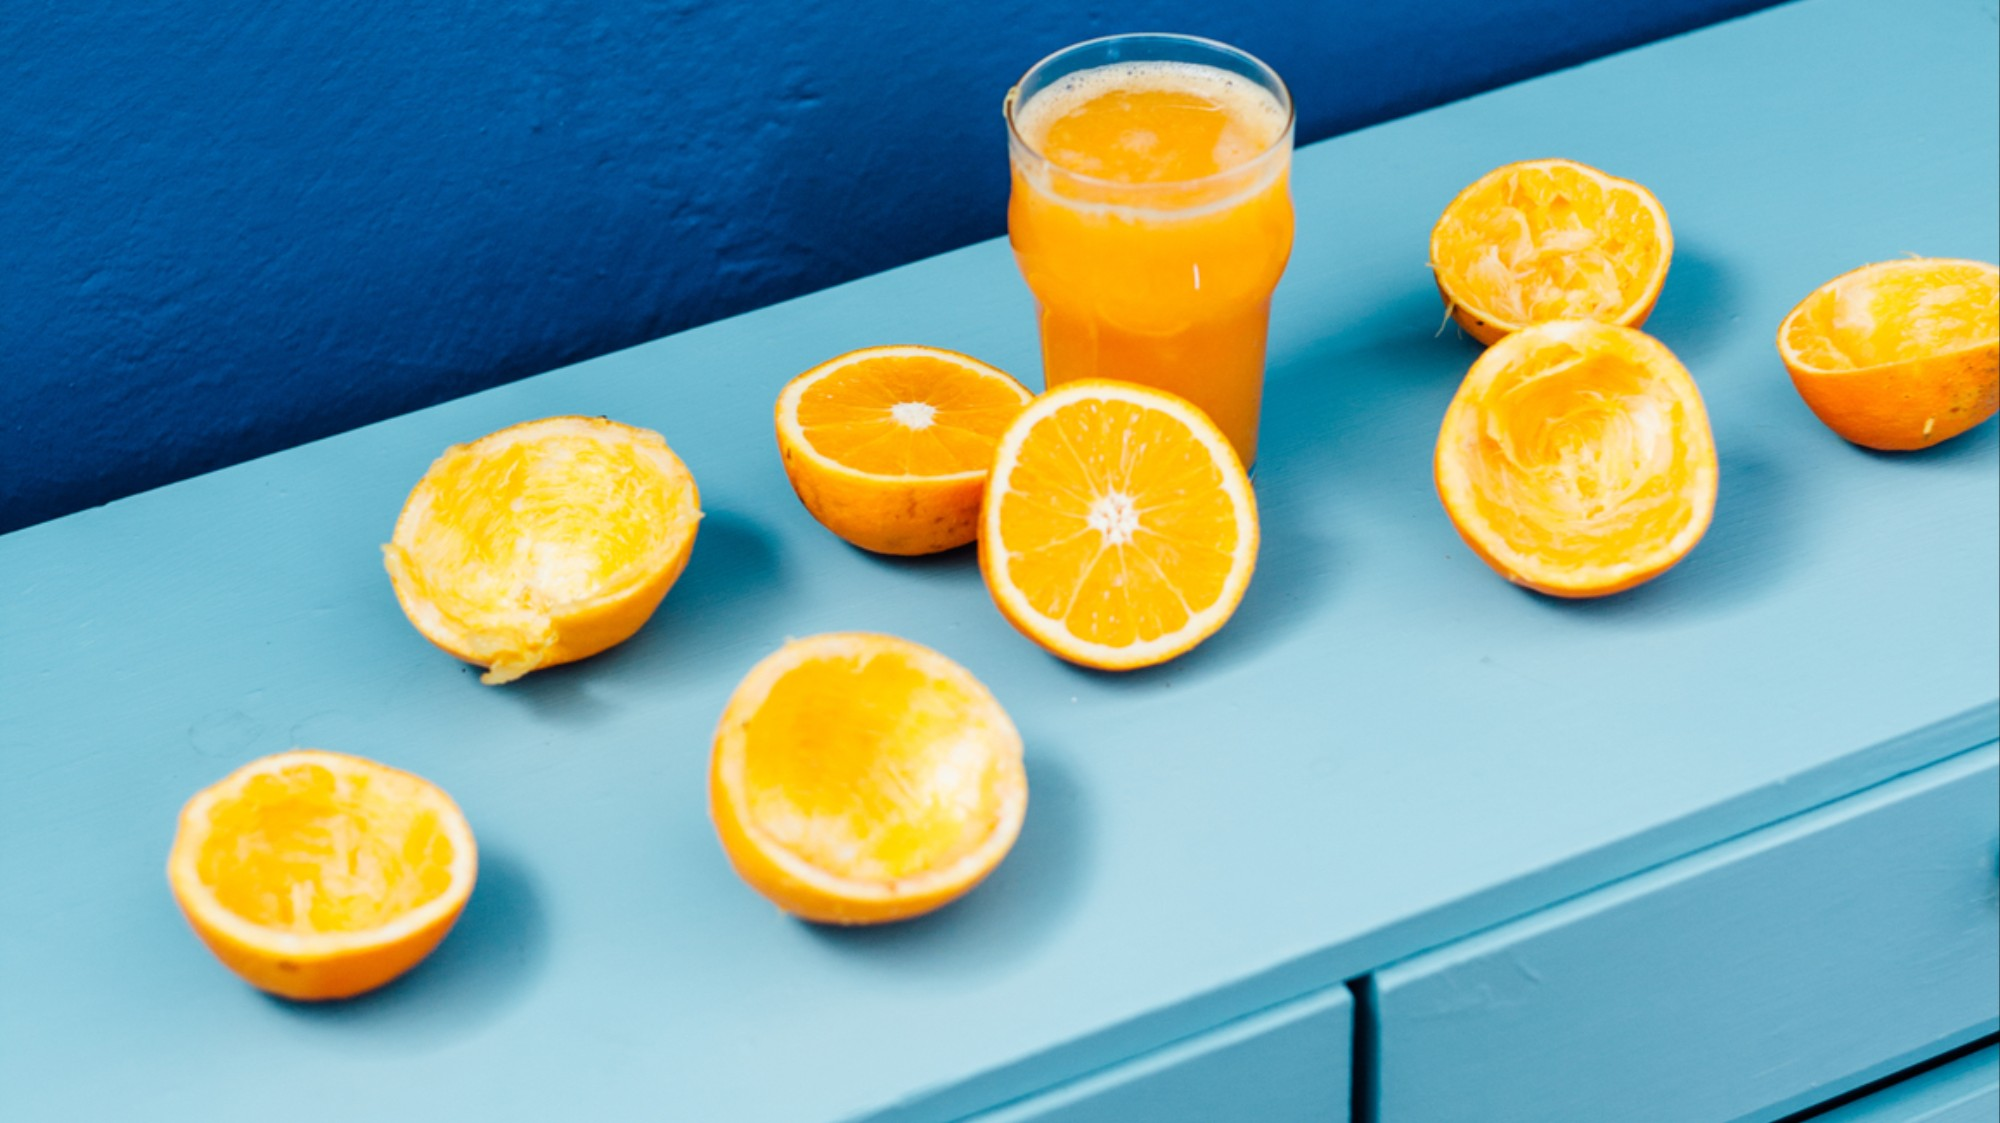 How Long Can Orange Juice Sit Out? - VICE